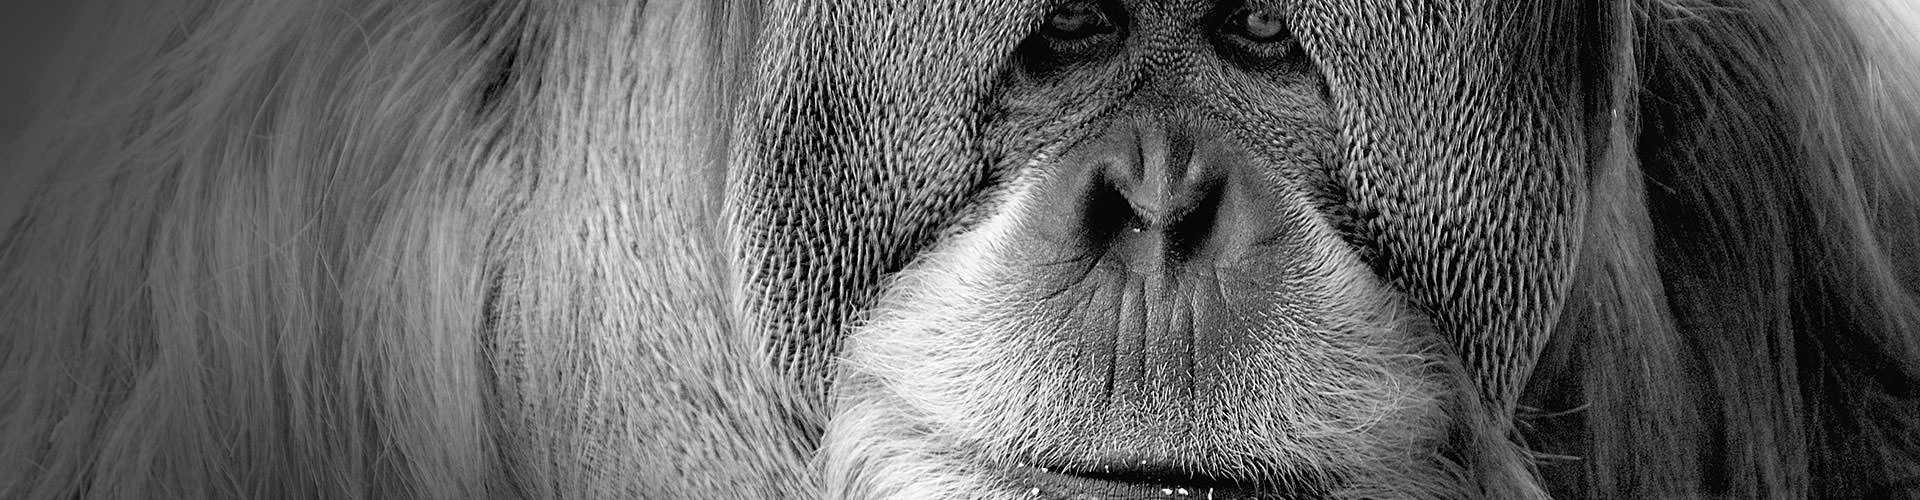 Support the Orangutan Legacy Forest